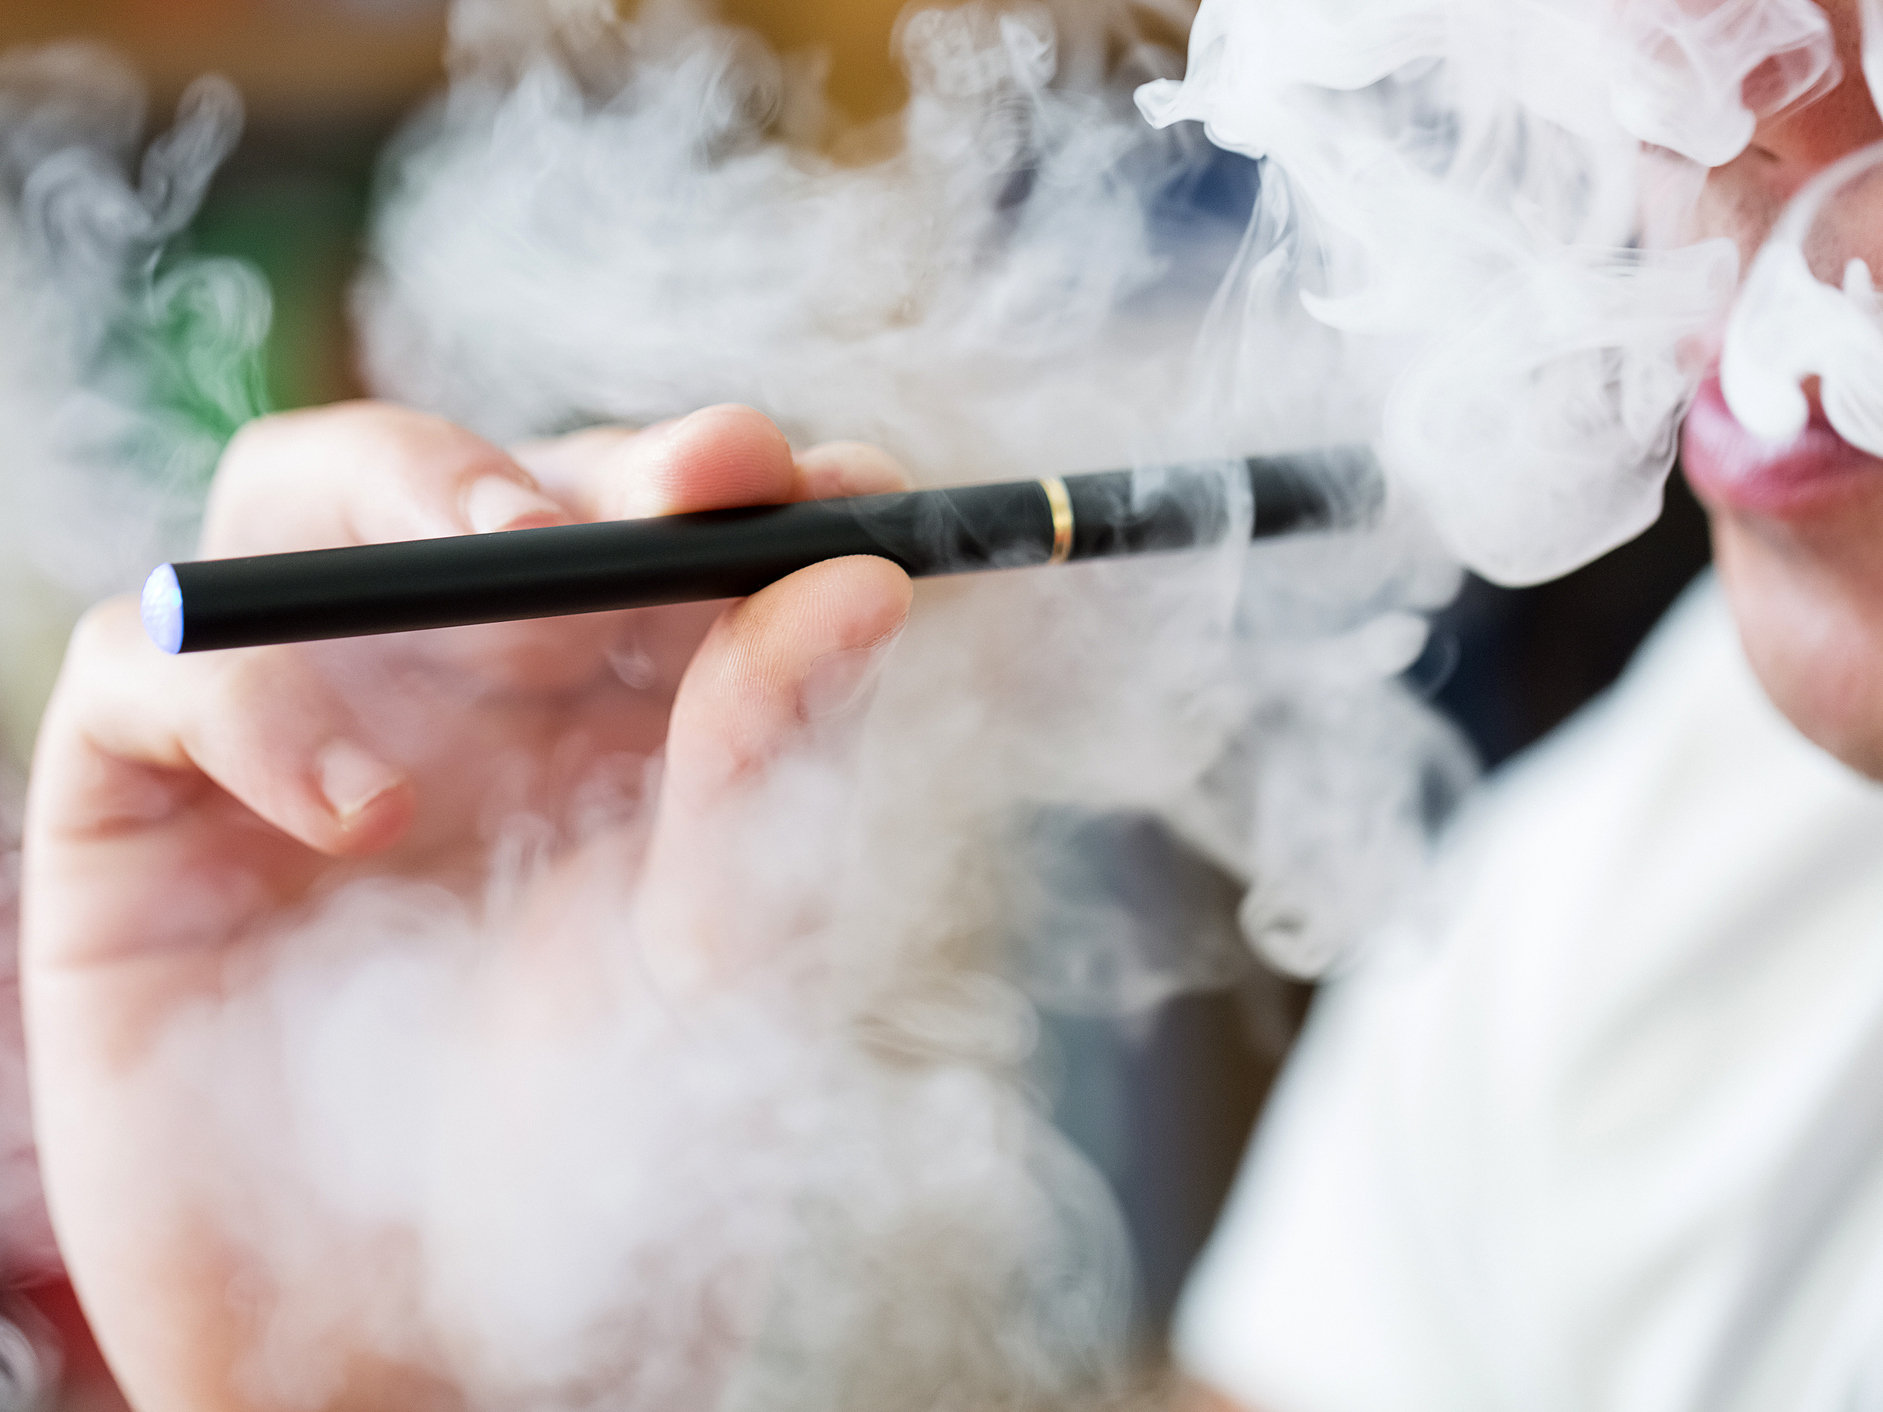 Many Adults Don't Think Exposure To Vaping Is Bad For Kids